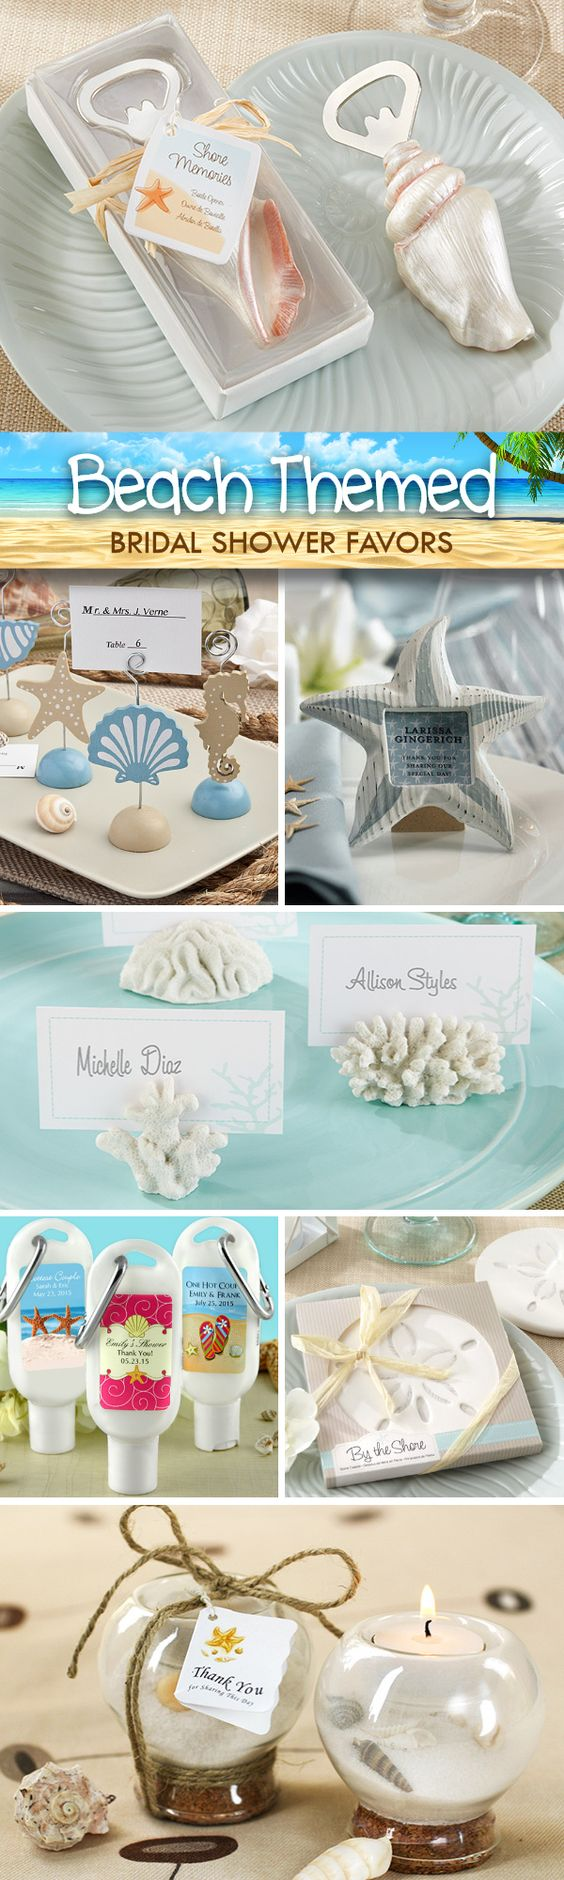 Wedding Gift Checks : you gifts your guests will love? Check out these beach themed bridal ...